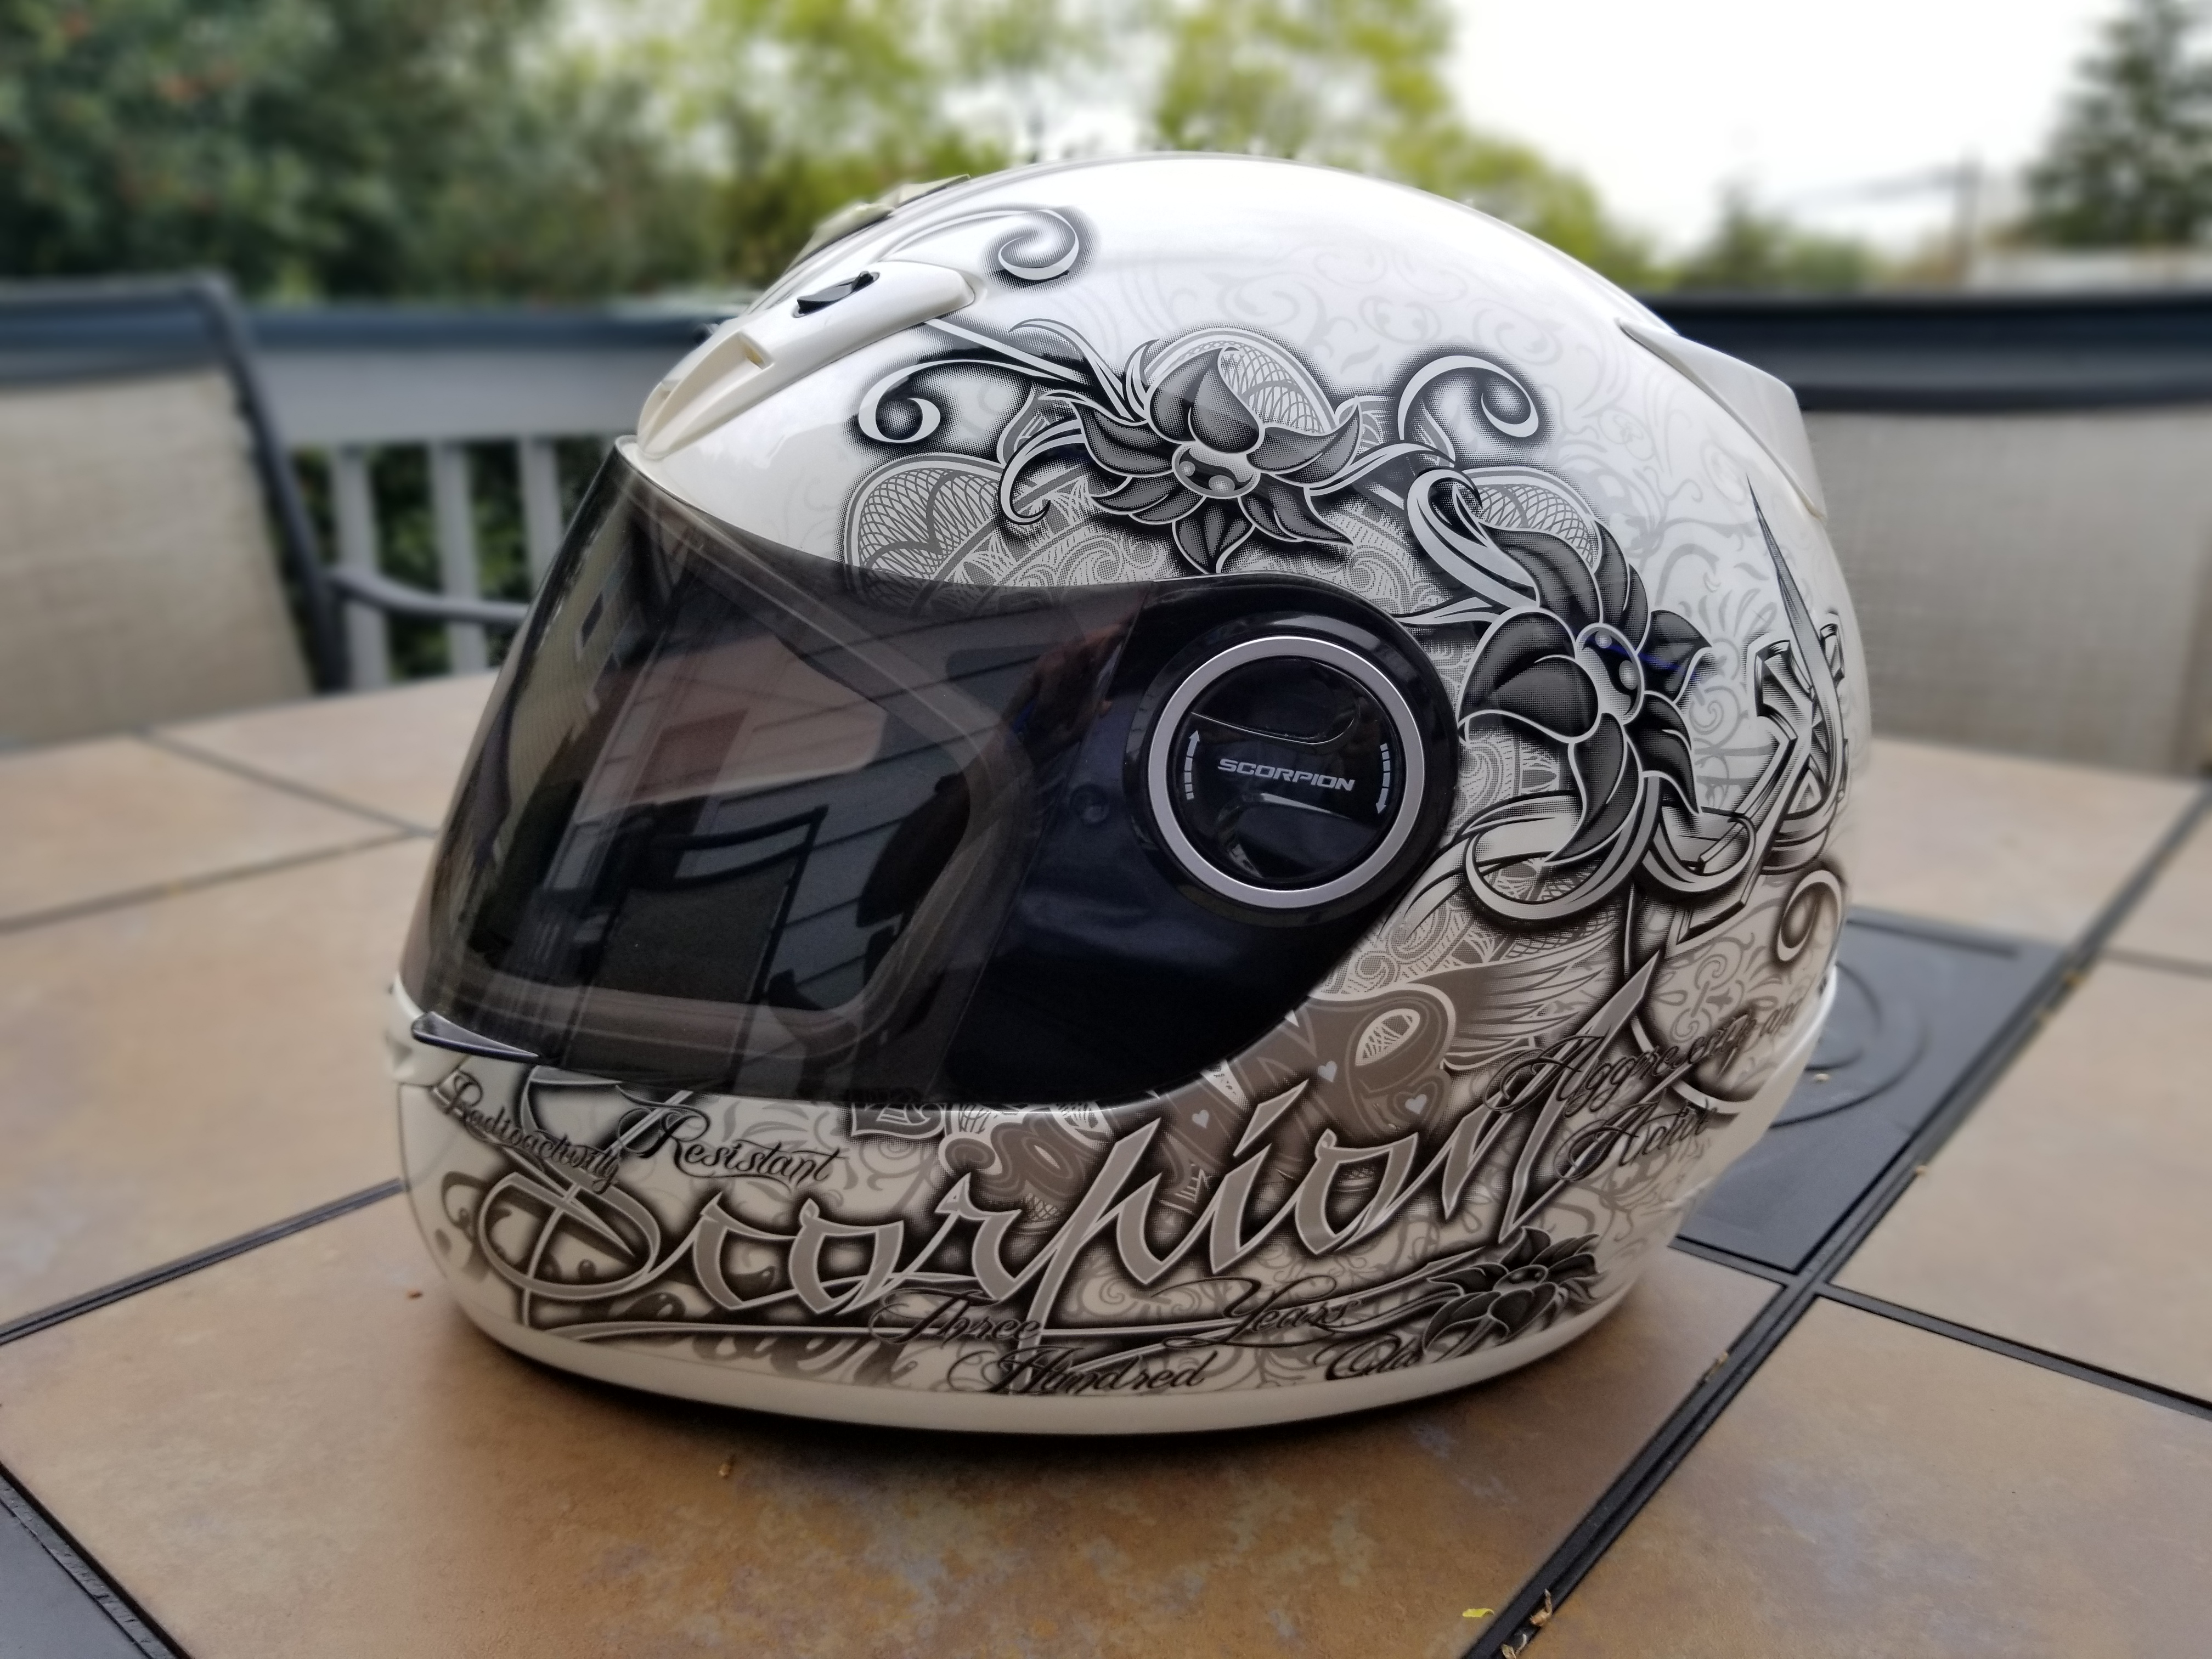 Scorpion Ann EXO-400 Street Motorcycle Helmet - Pearl White Extra Small XS-20190421_115317_1560210079998.jpg